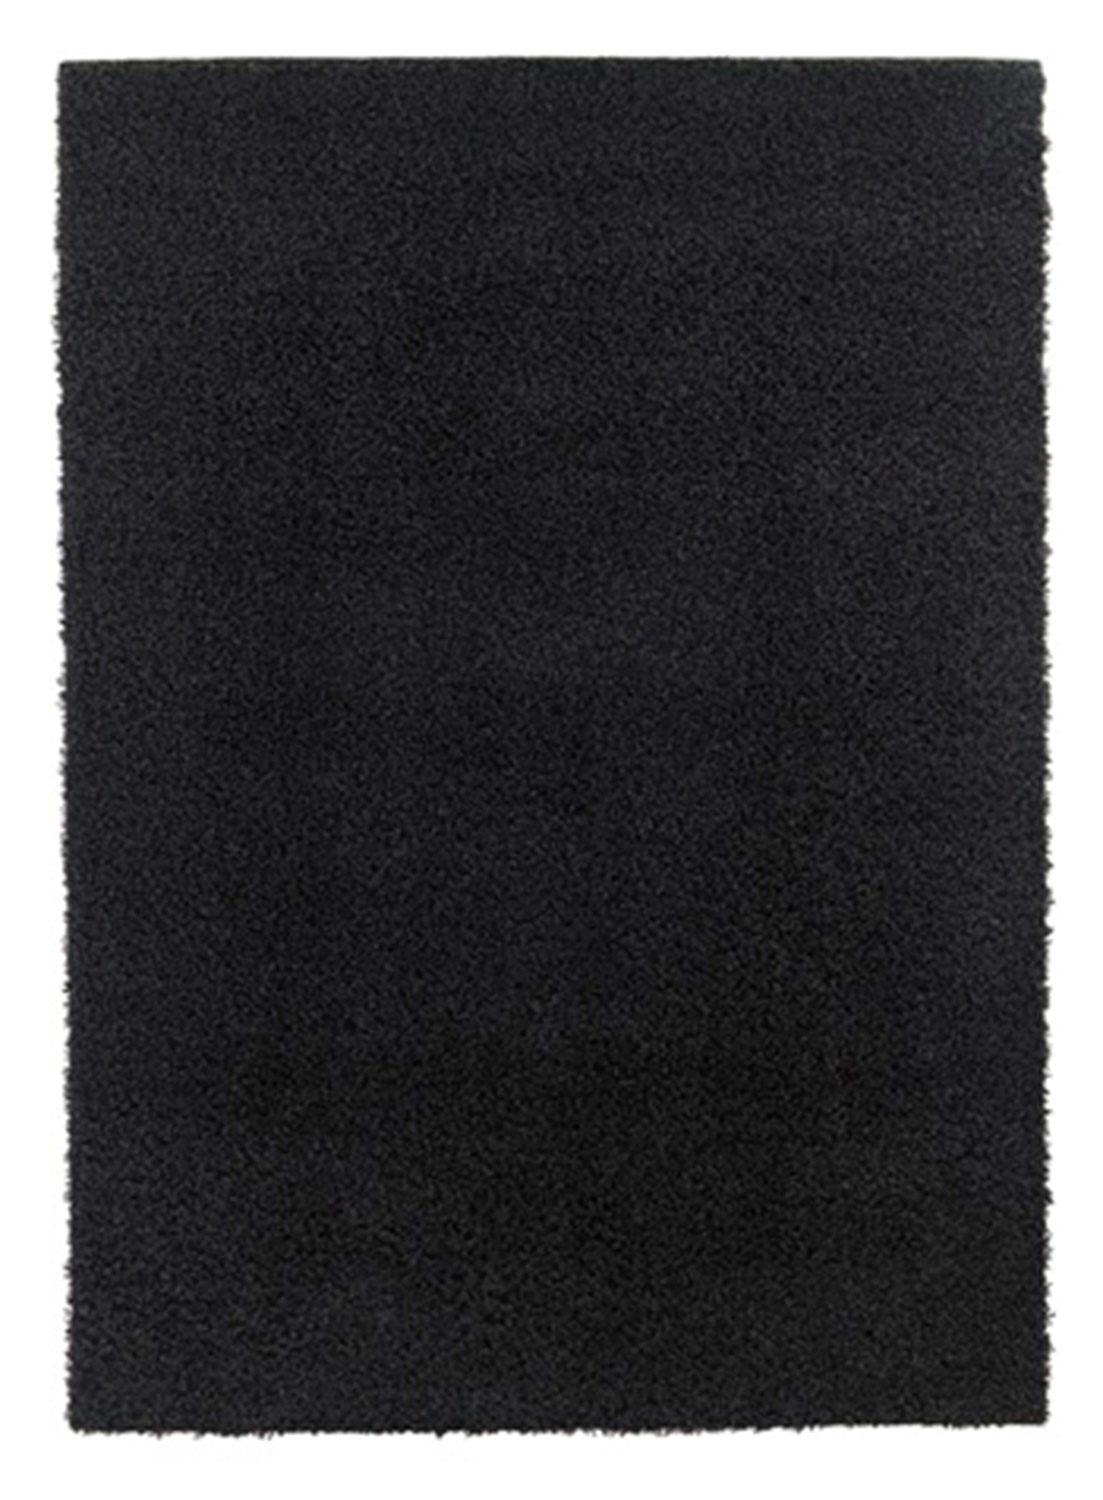 Ashley Caci Medium Rug - Charcoal